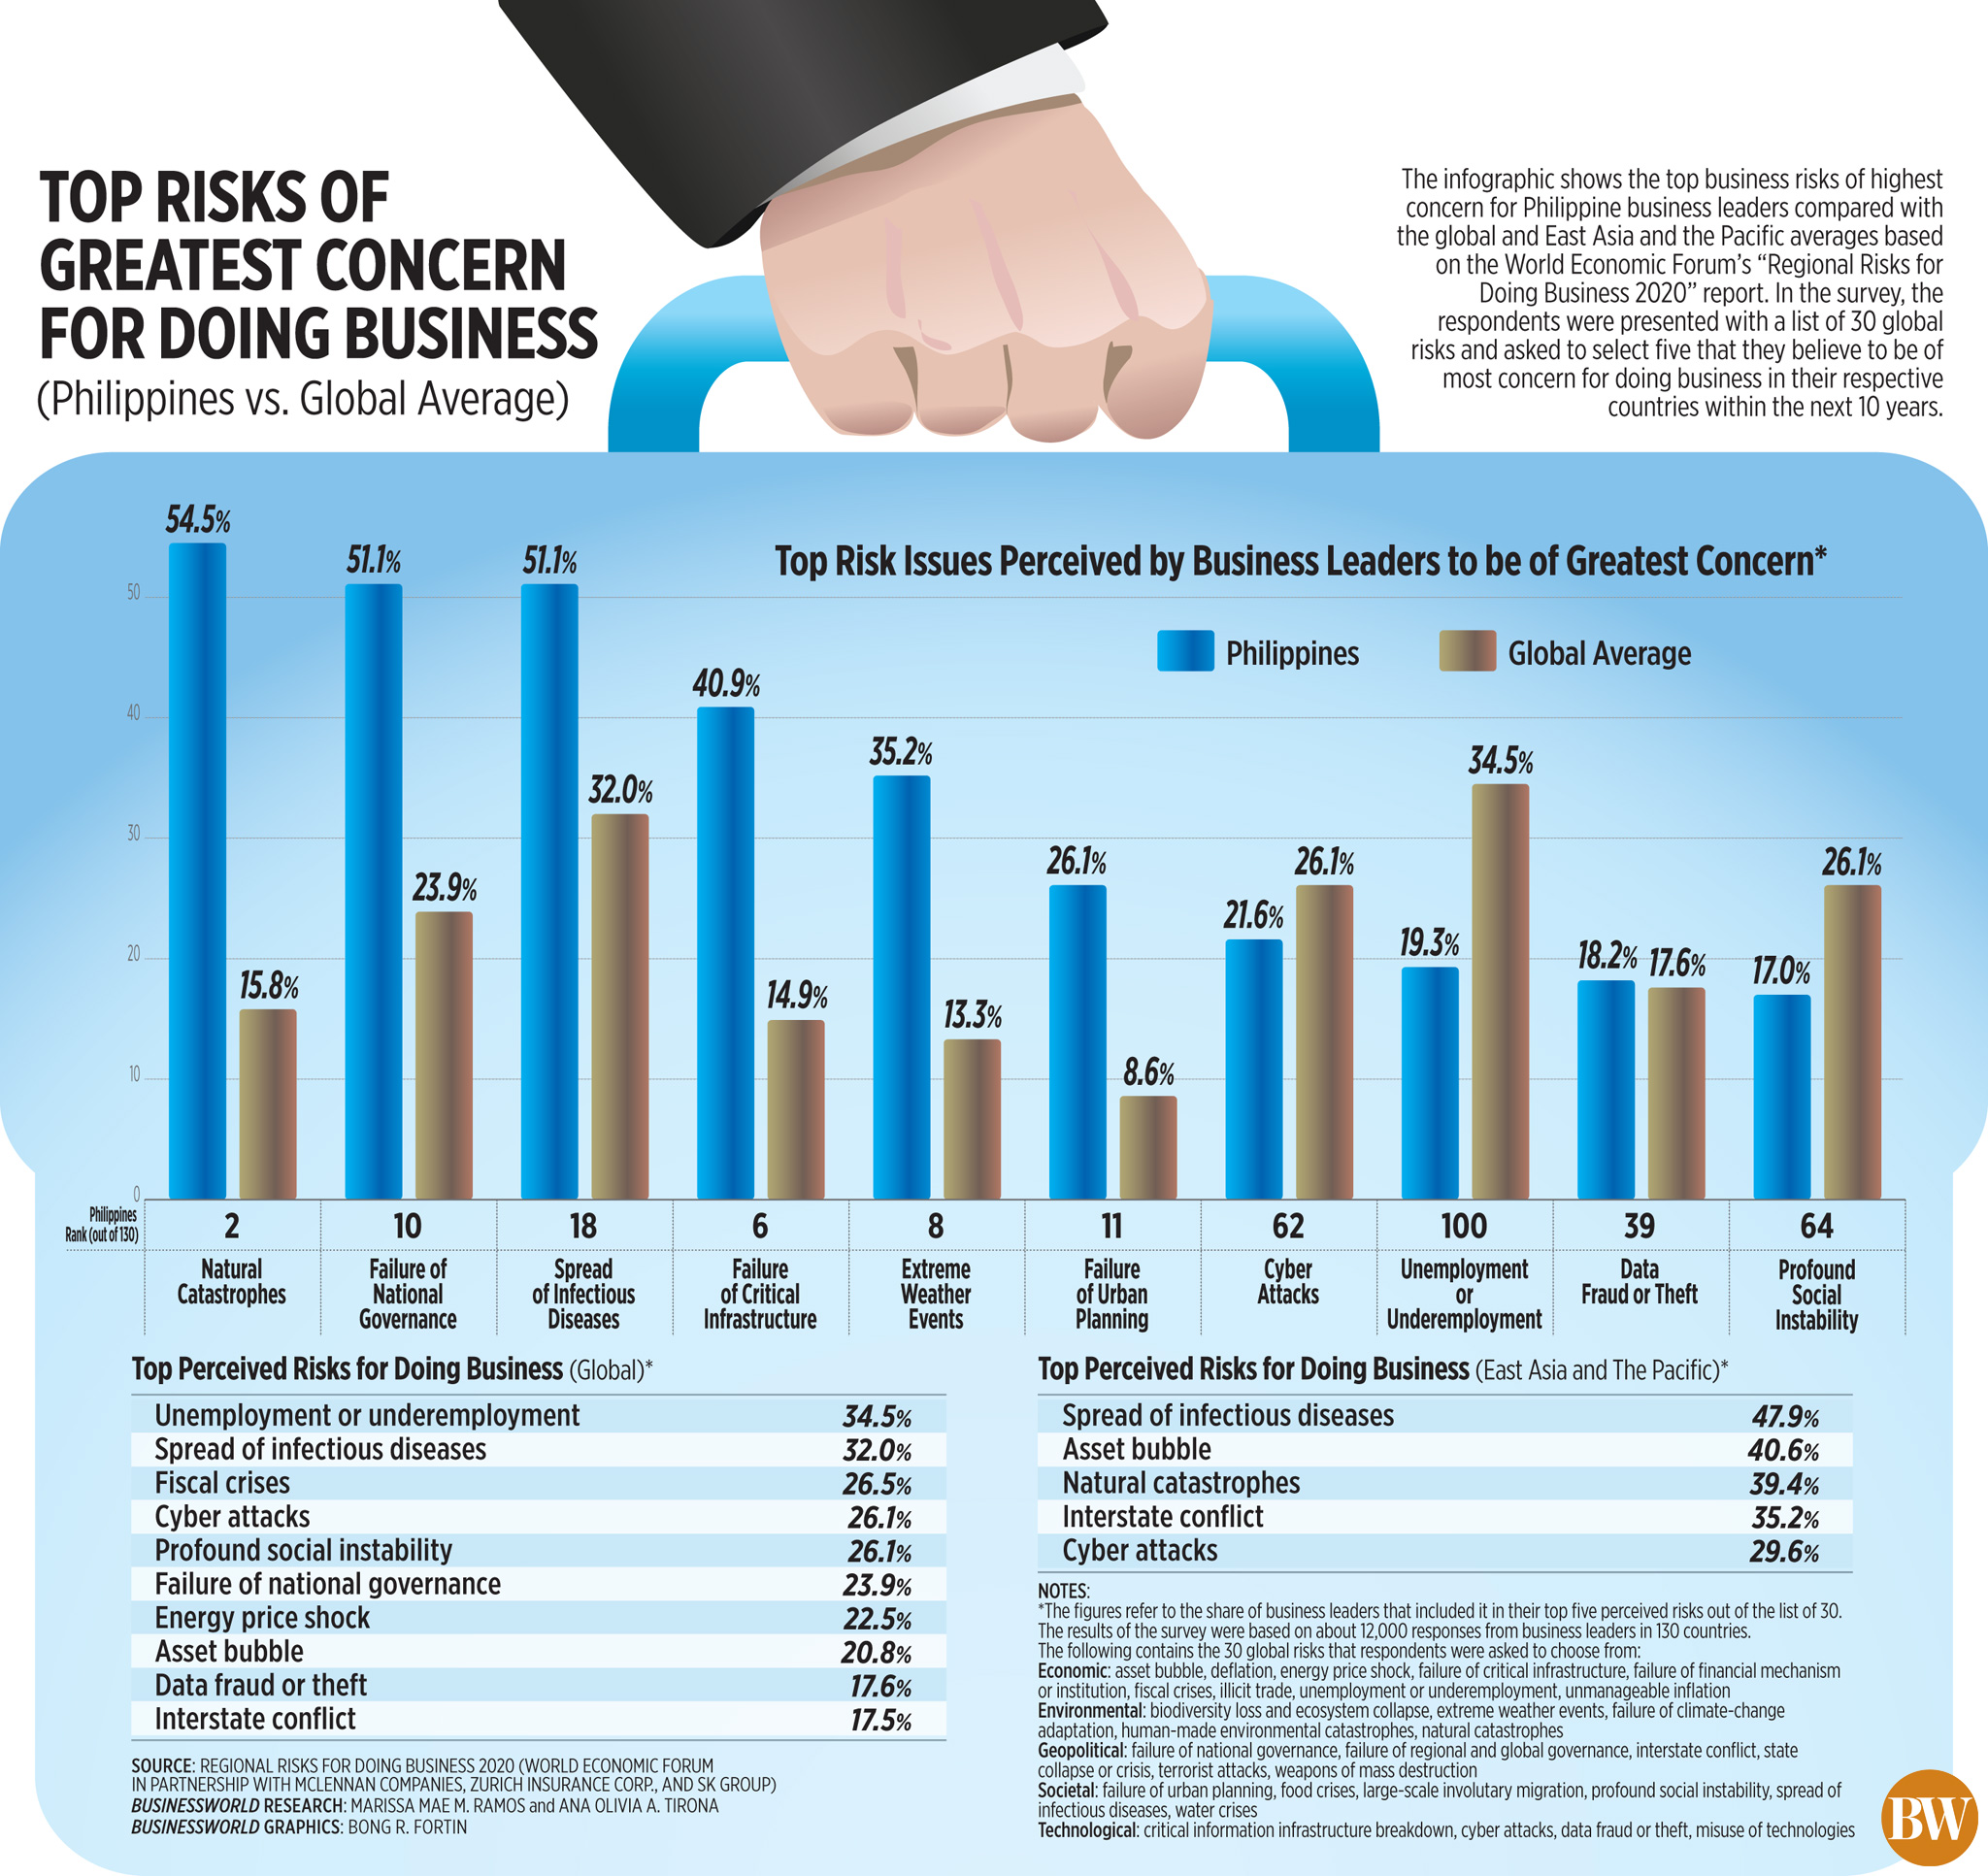 Top risks of greatest concern for doing business